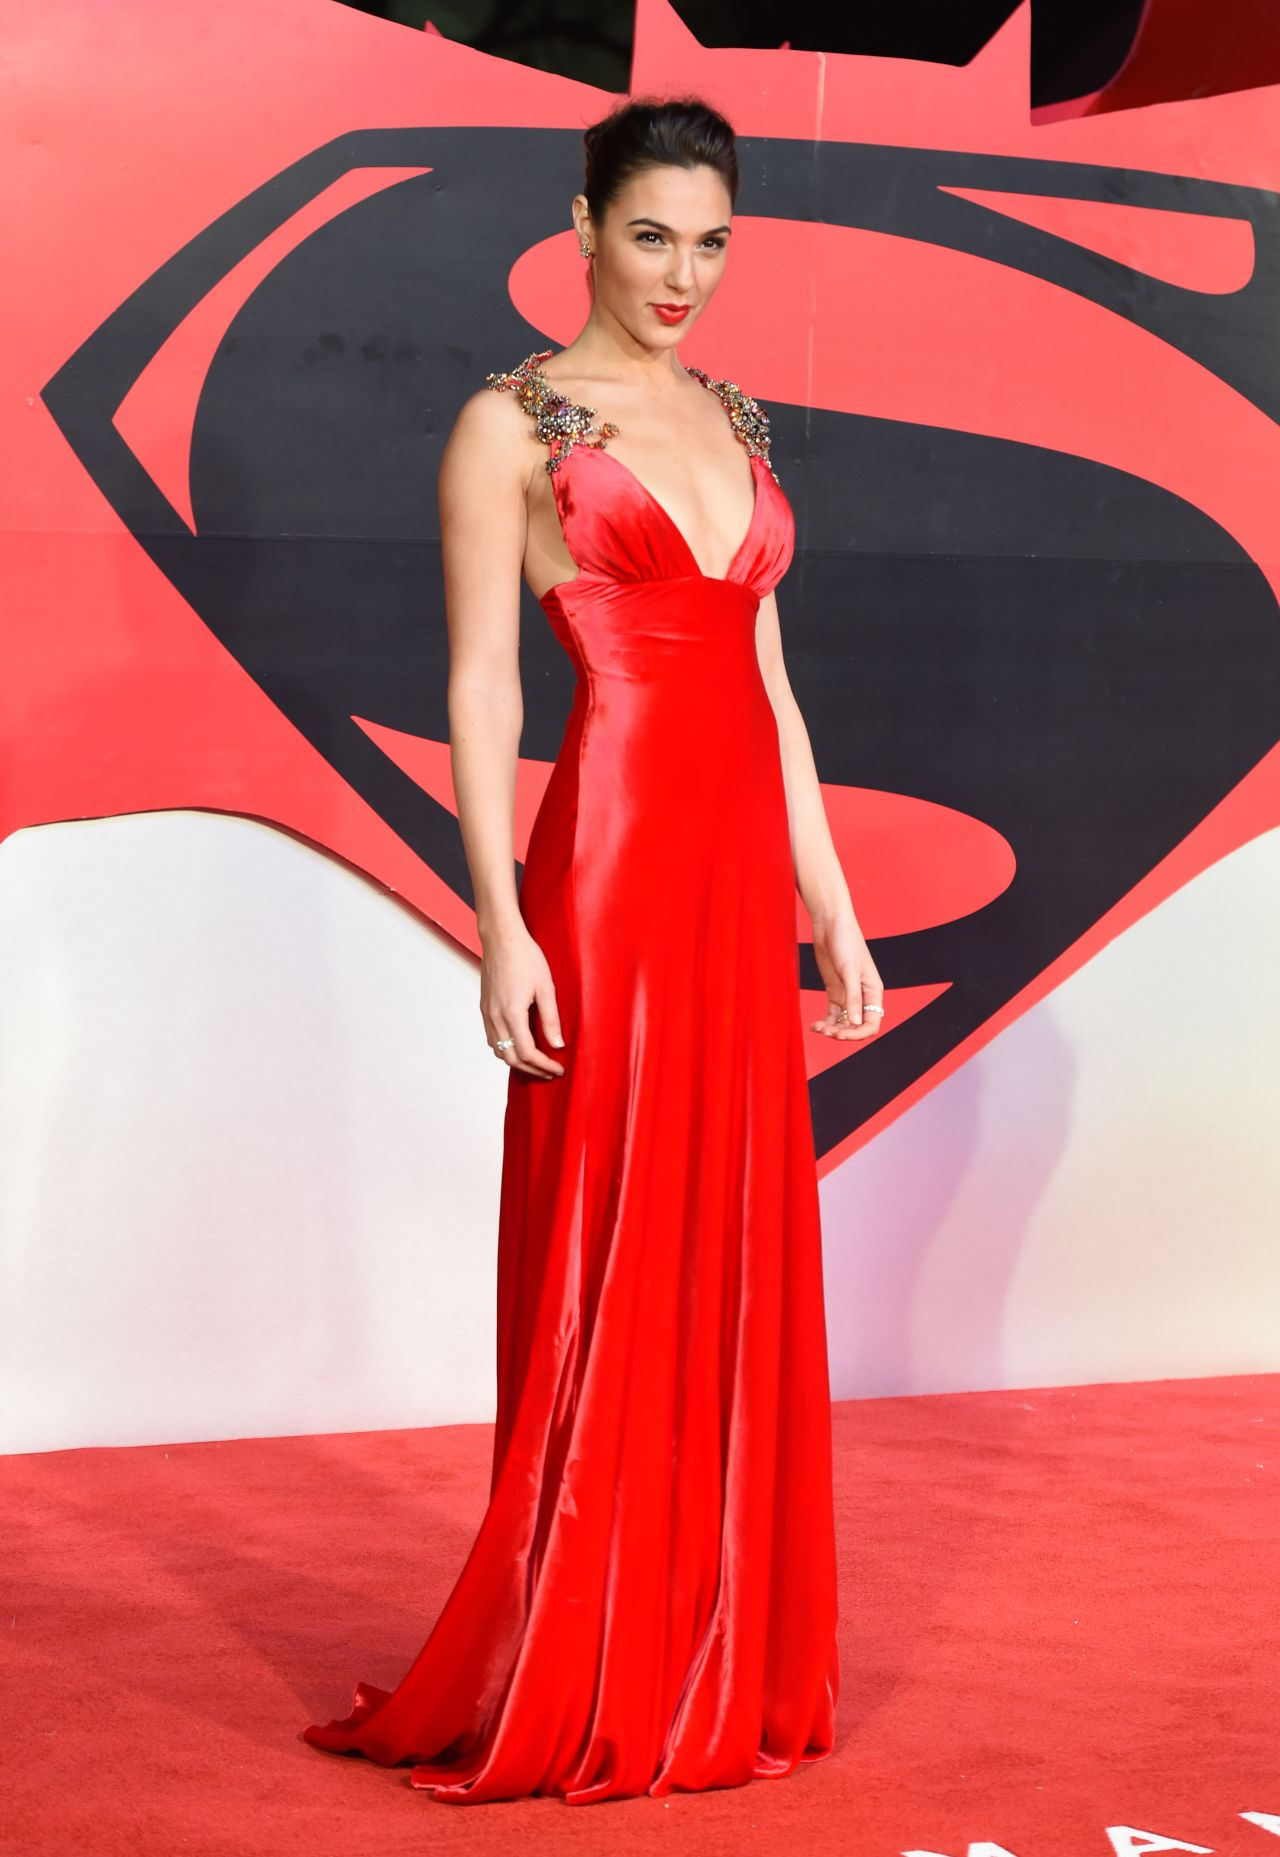 http://celebmafia.com/wp-content/uploads/2016/03/gal-gadot-batman-v-superman-dawn-of-justice-premiere-in-london-uk-3-22-2016-2.jpg